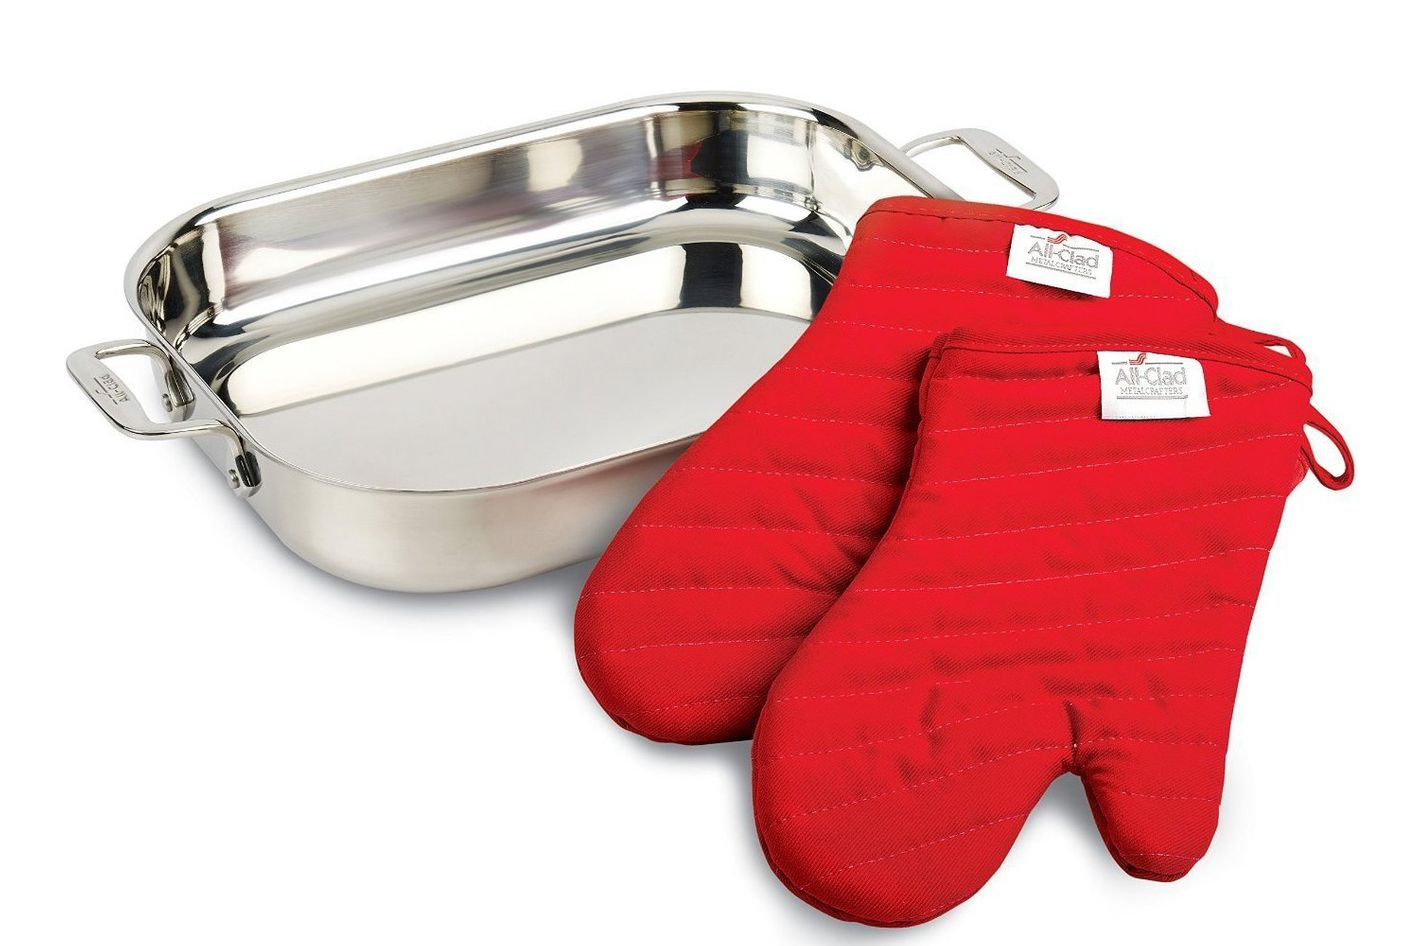 All-Clad Stainless-Steel Lasagna Pan